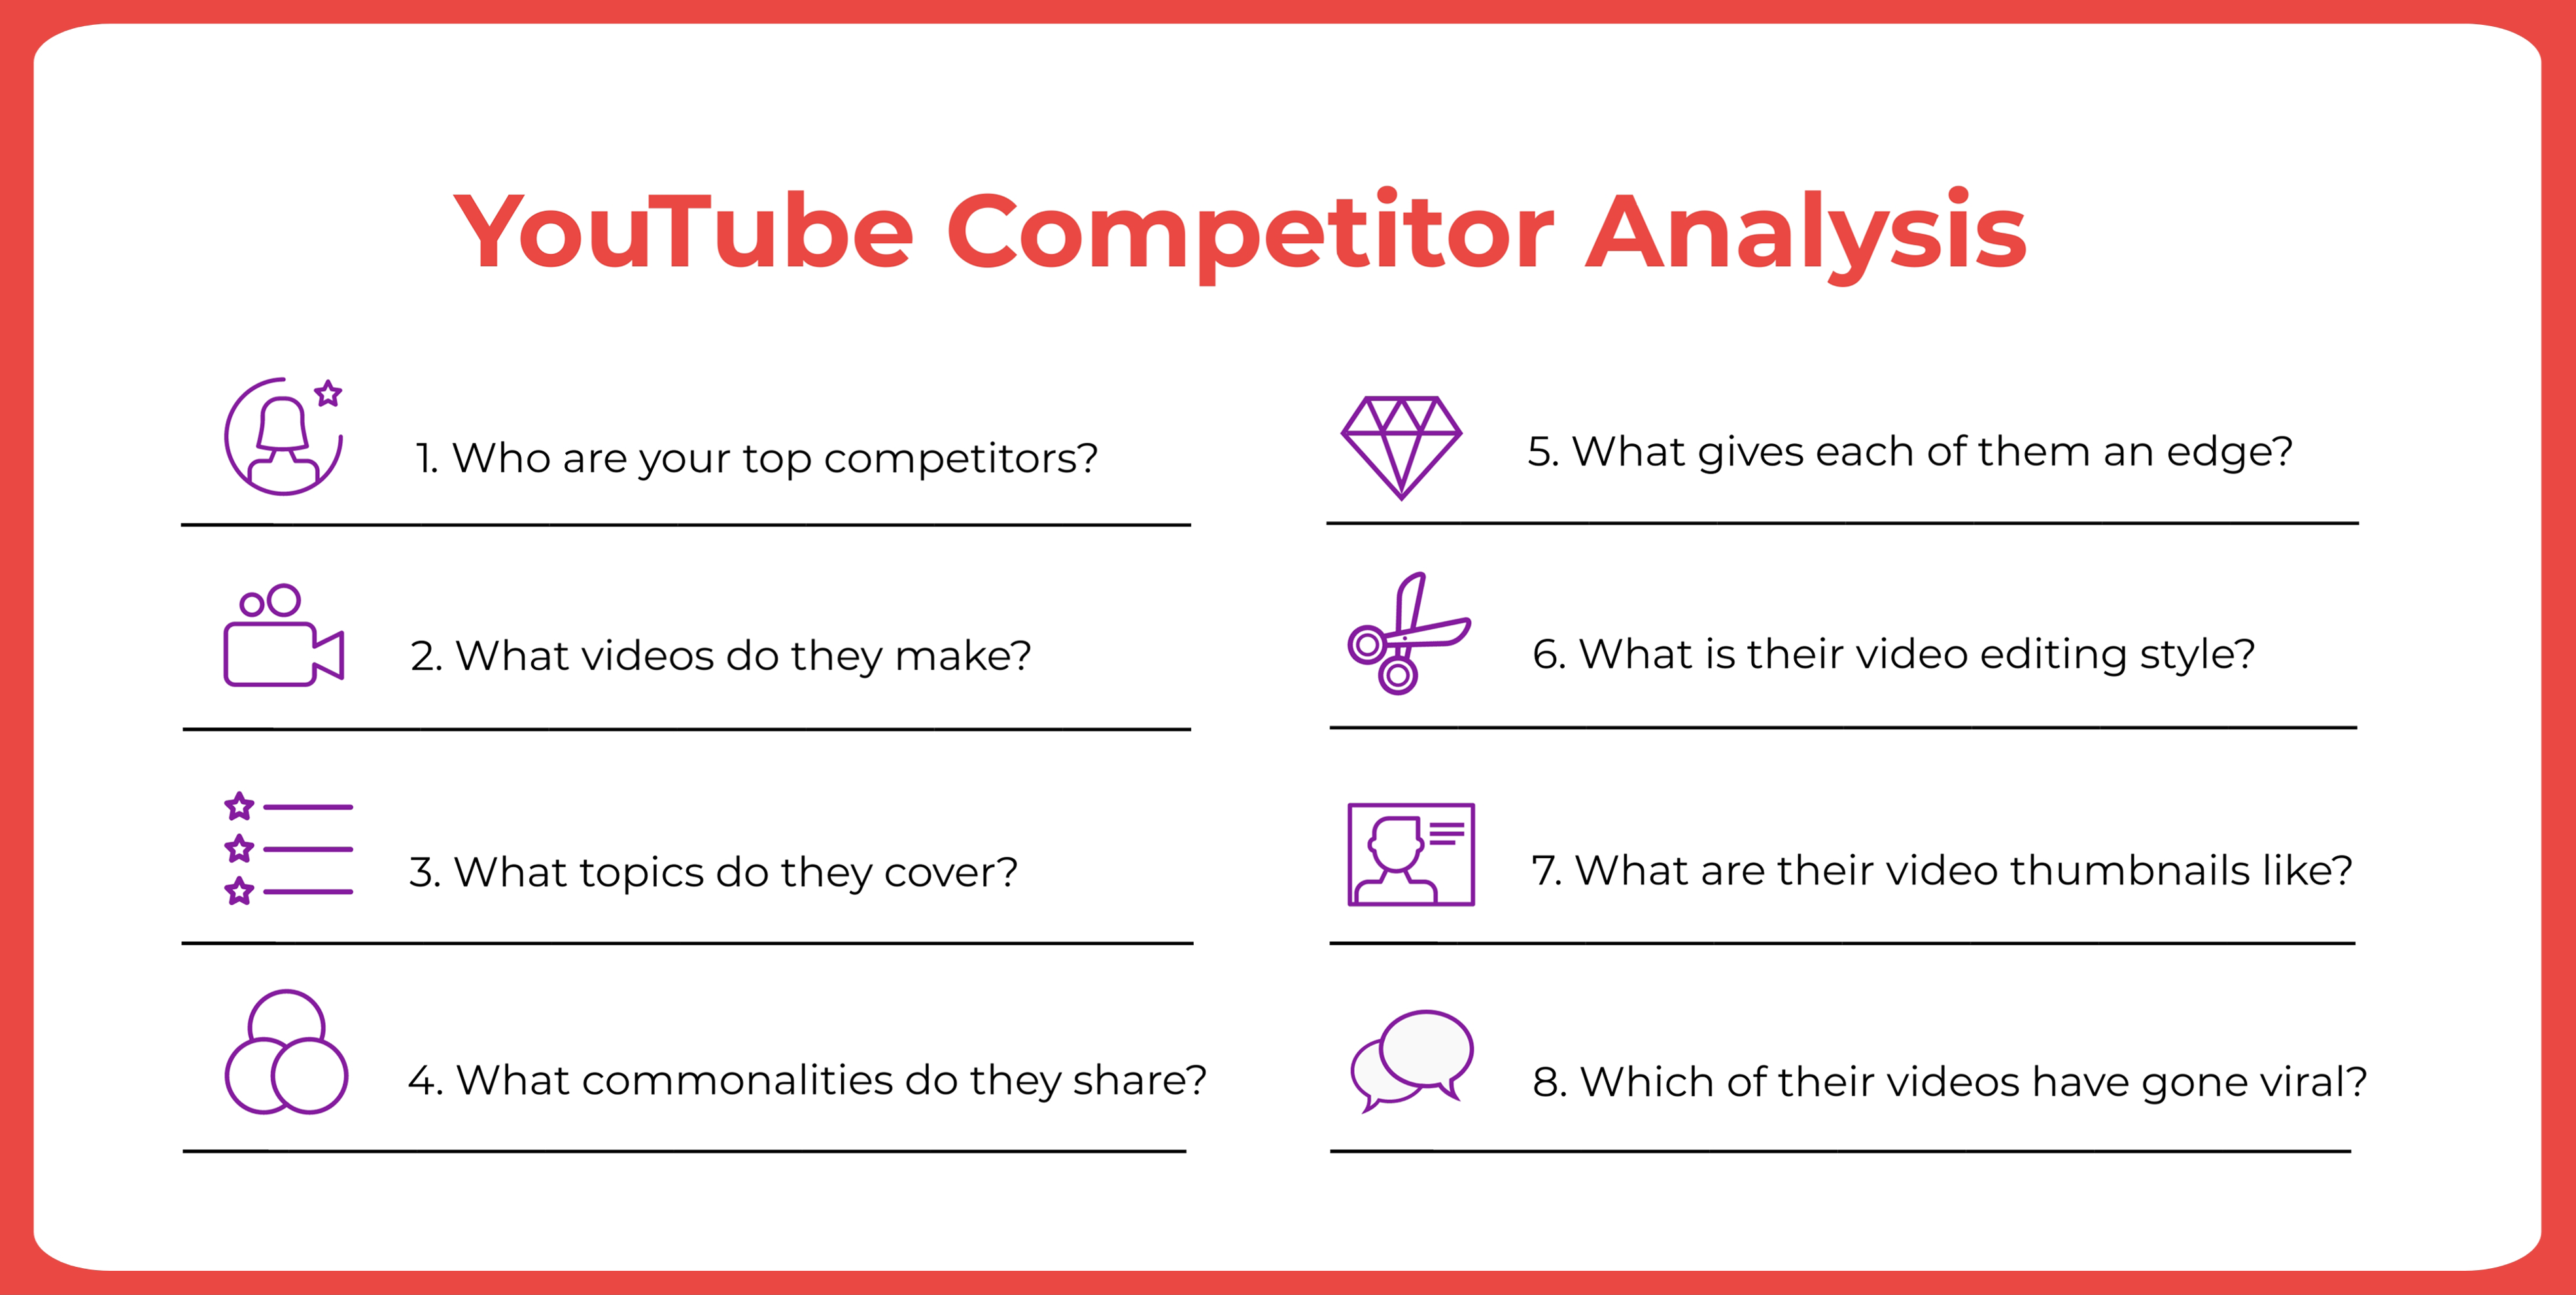 youtube competitor analysis tips